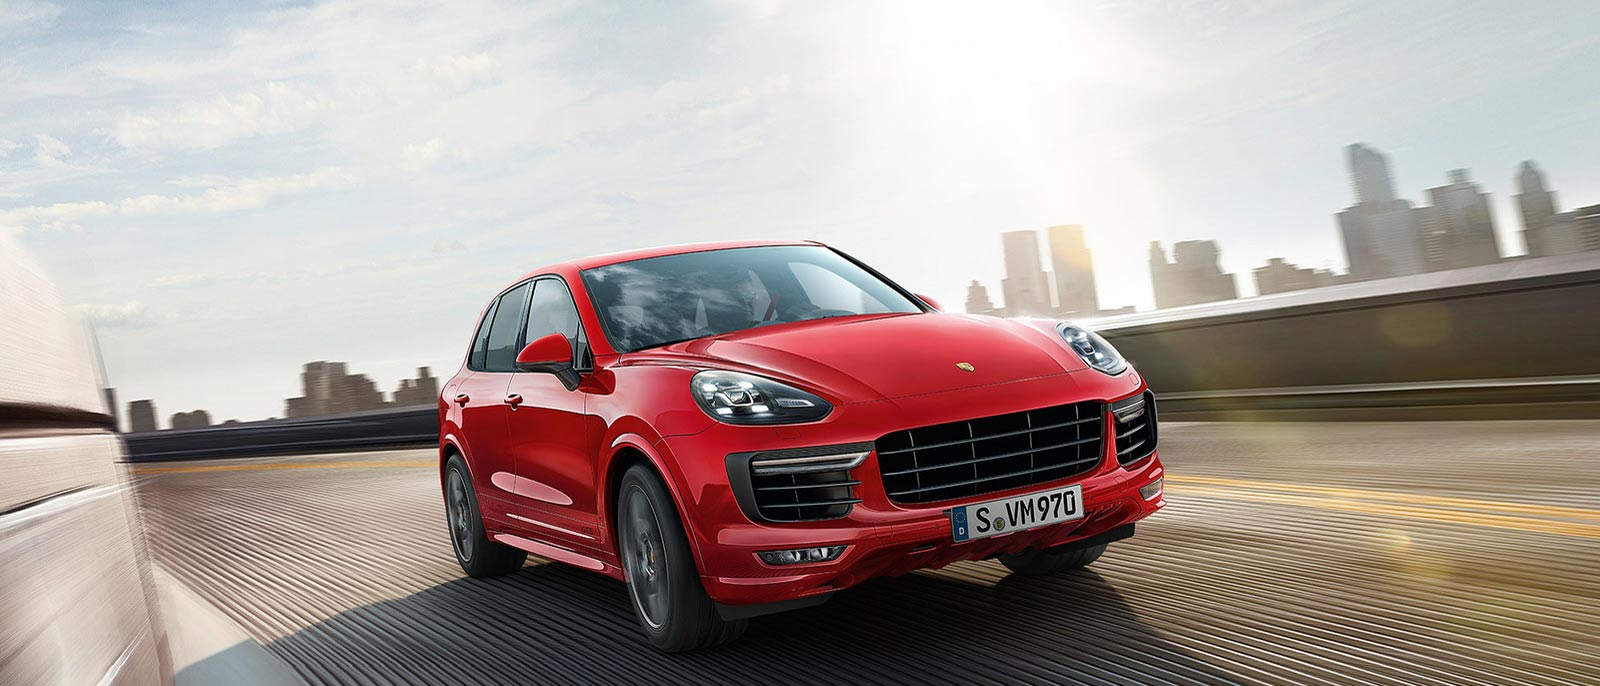 2015 porsche cayenne gts model info porsche orland park. Black Bedroom Furniture Sets. Home Design Ideas